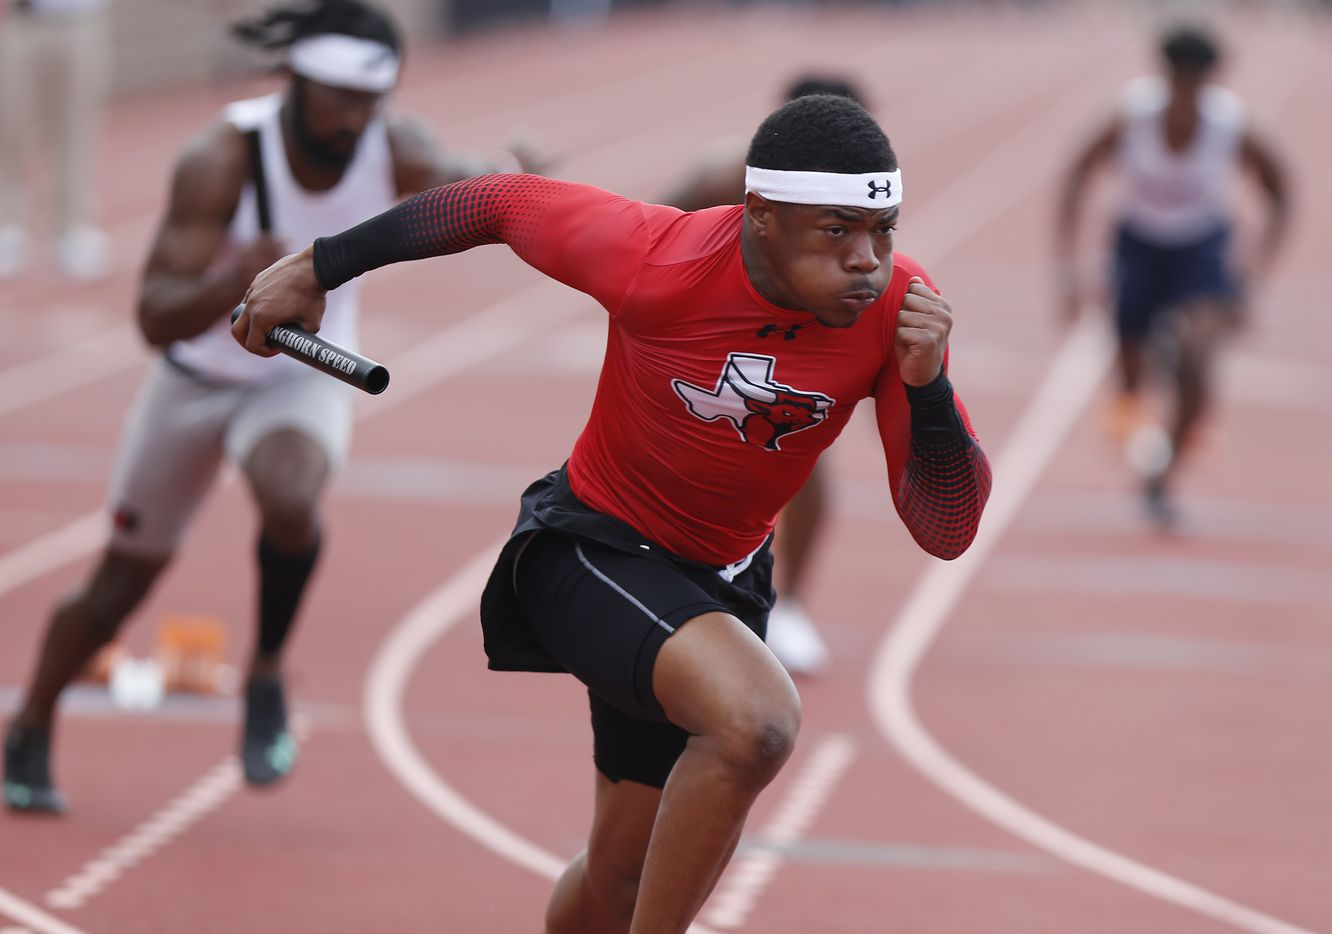 Kaleb Green, 17, begins the first leg of the boys 4 x100 for Lancaster High School during the Jesuit-Sheaner Relays held at Jesuit College Preparatory School in Dallas on Saturday, March 27, 2021.  (Stewart F. House/Special Contributor)